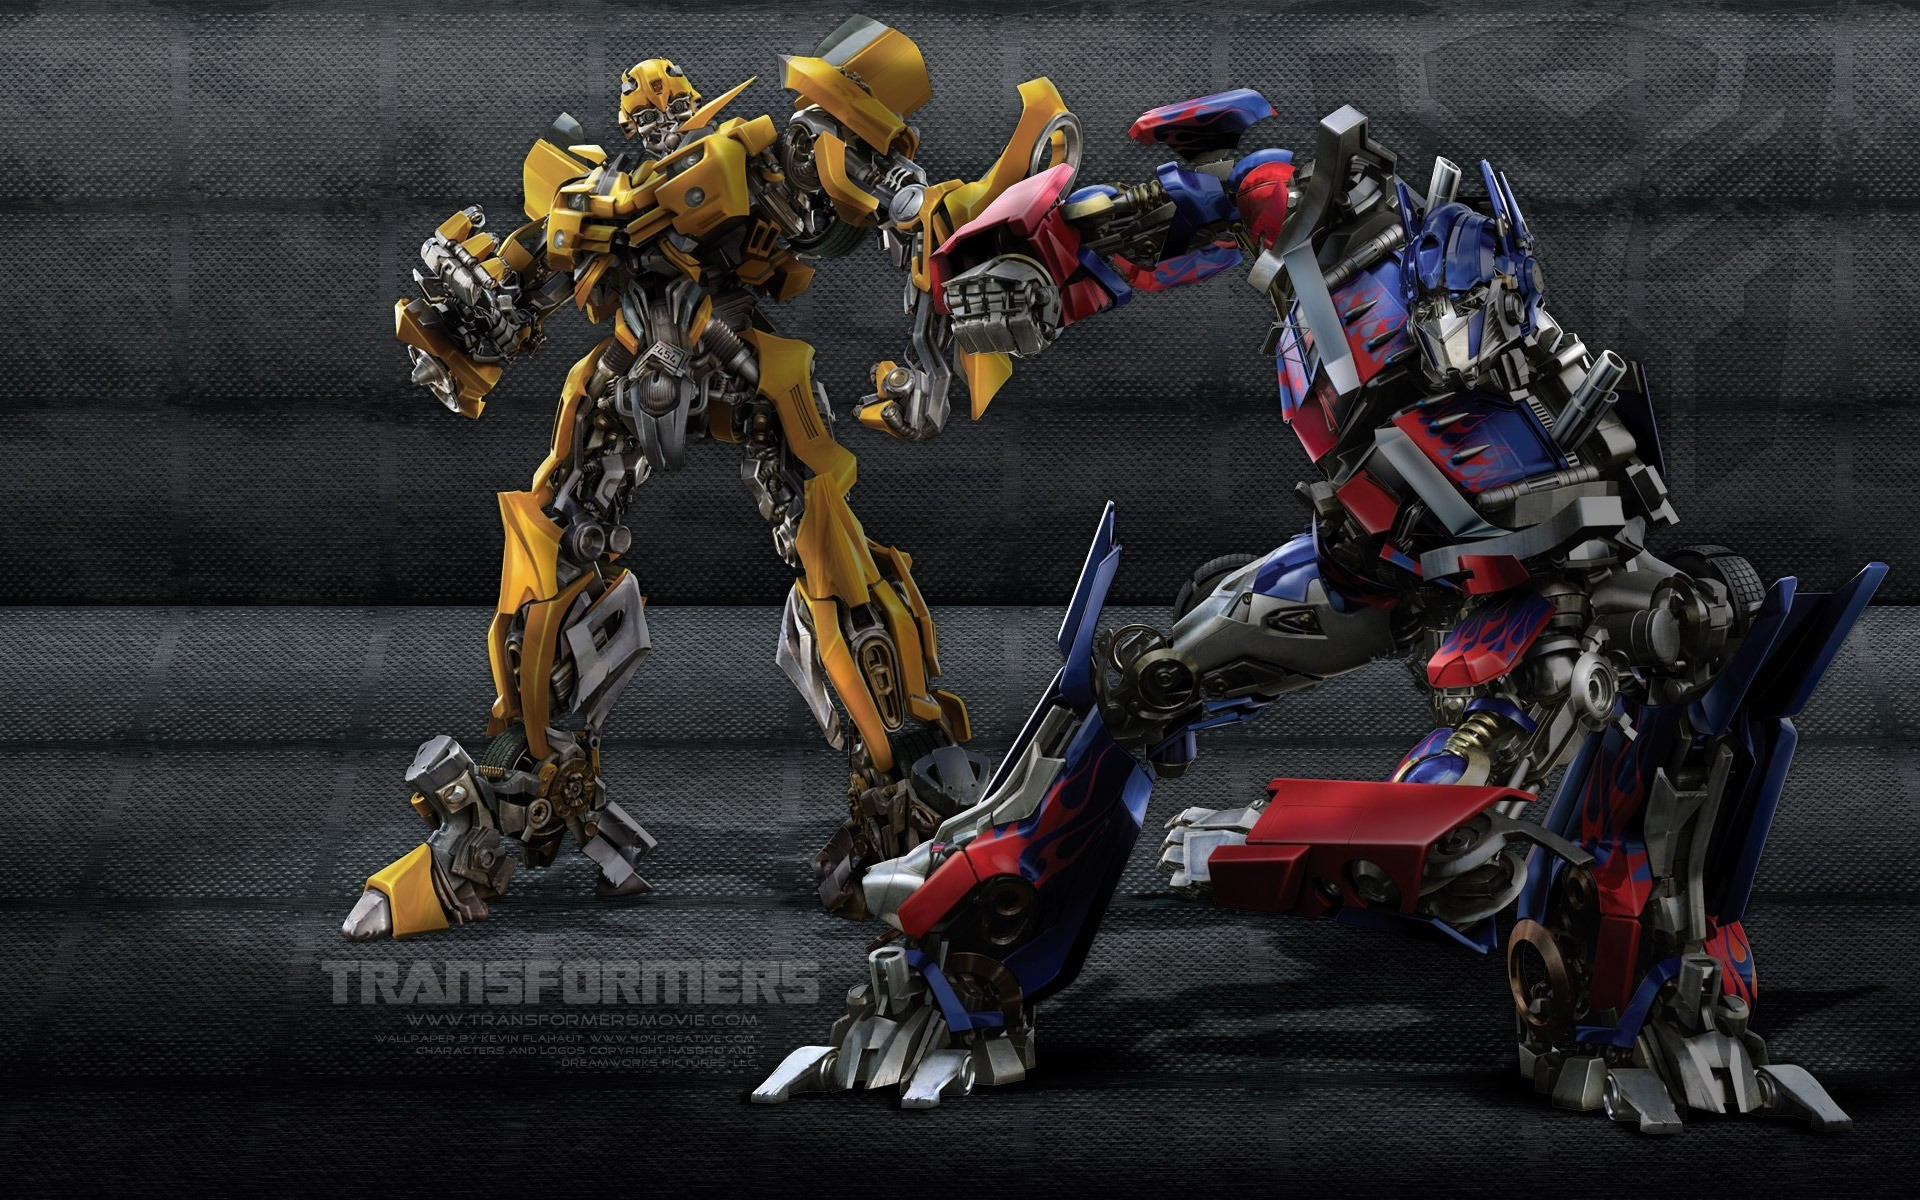 transformers 2 bumblebee wallpapers (74+ background pictures)